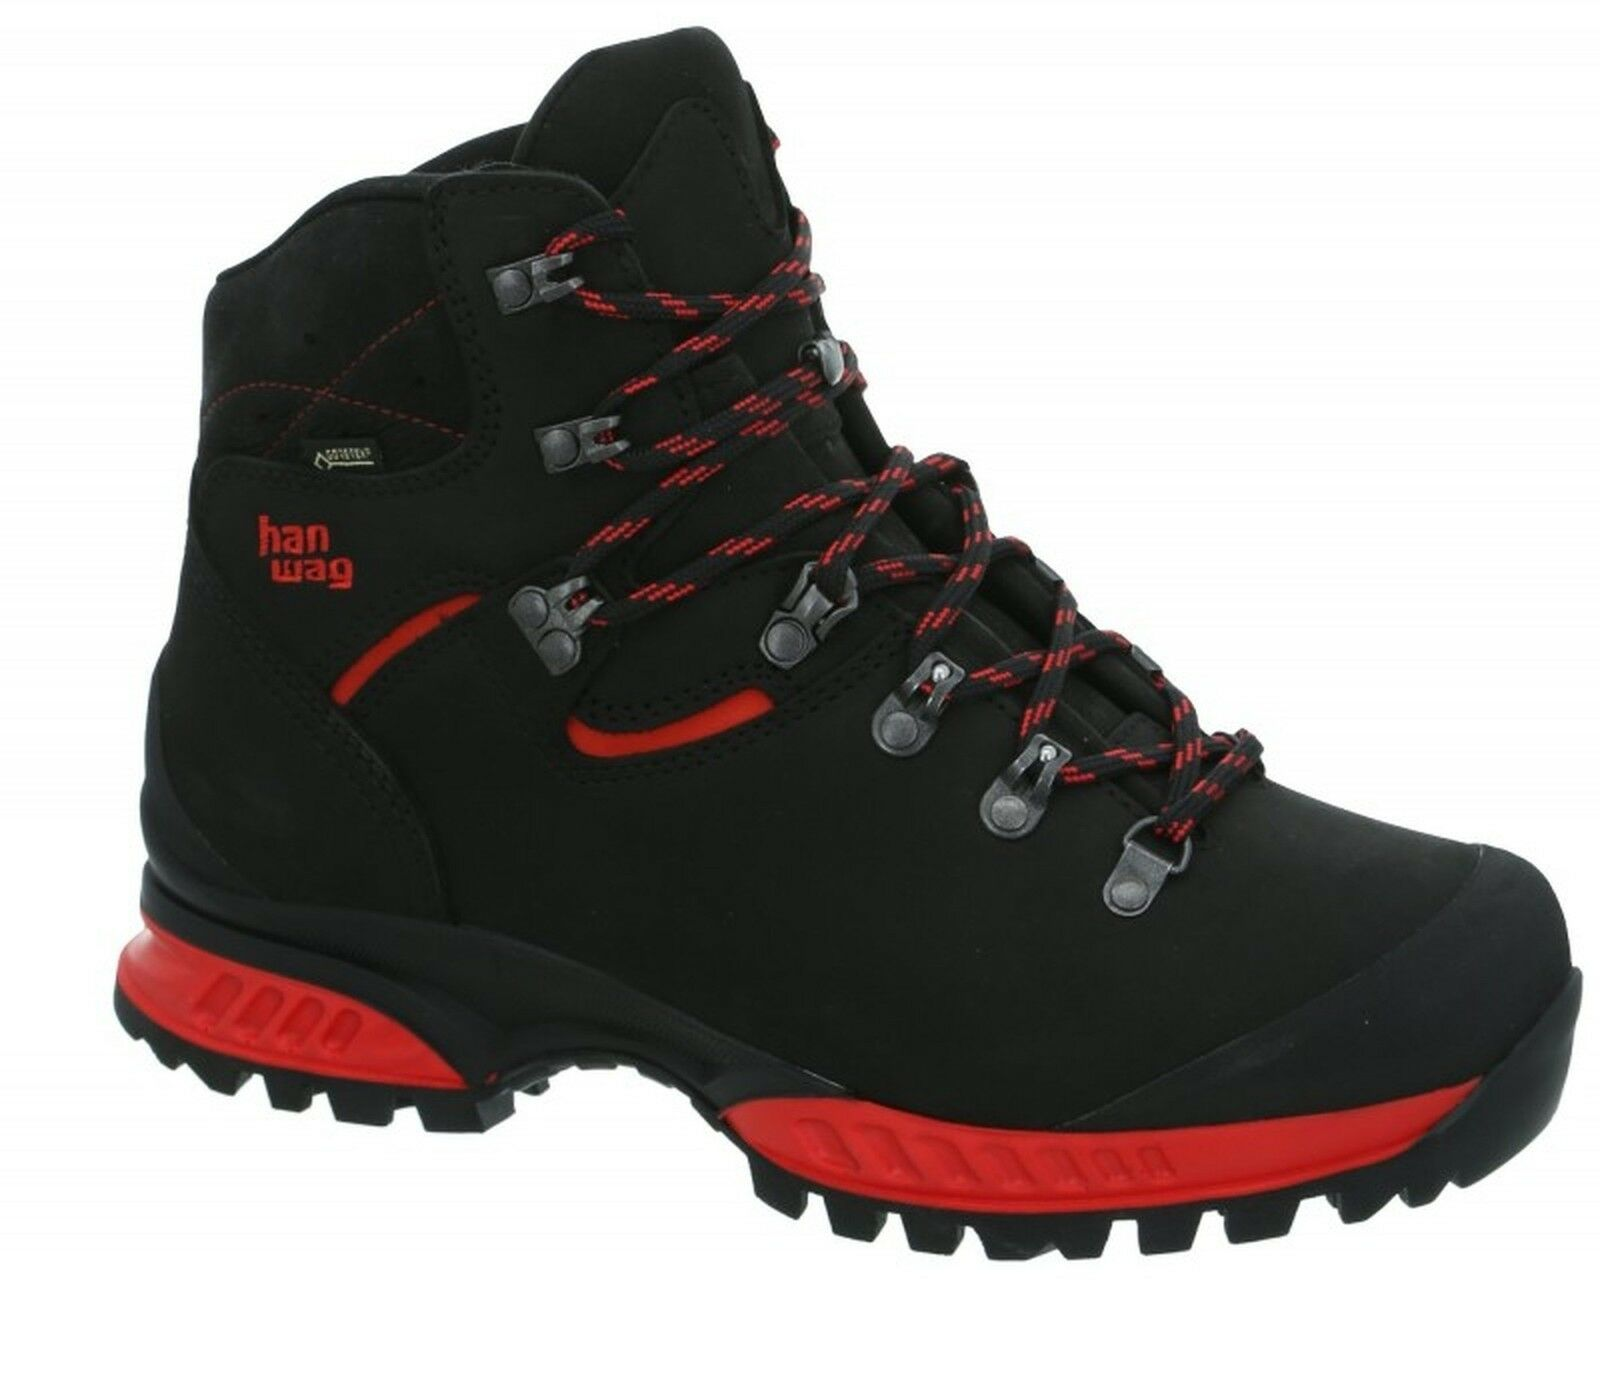 Hanwag Mountain shoes Tatra II GTX Size 8 - 42